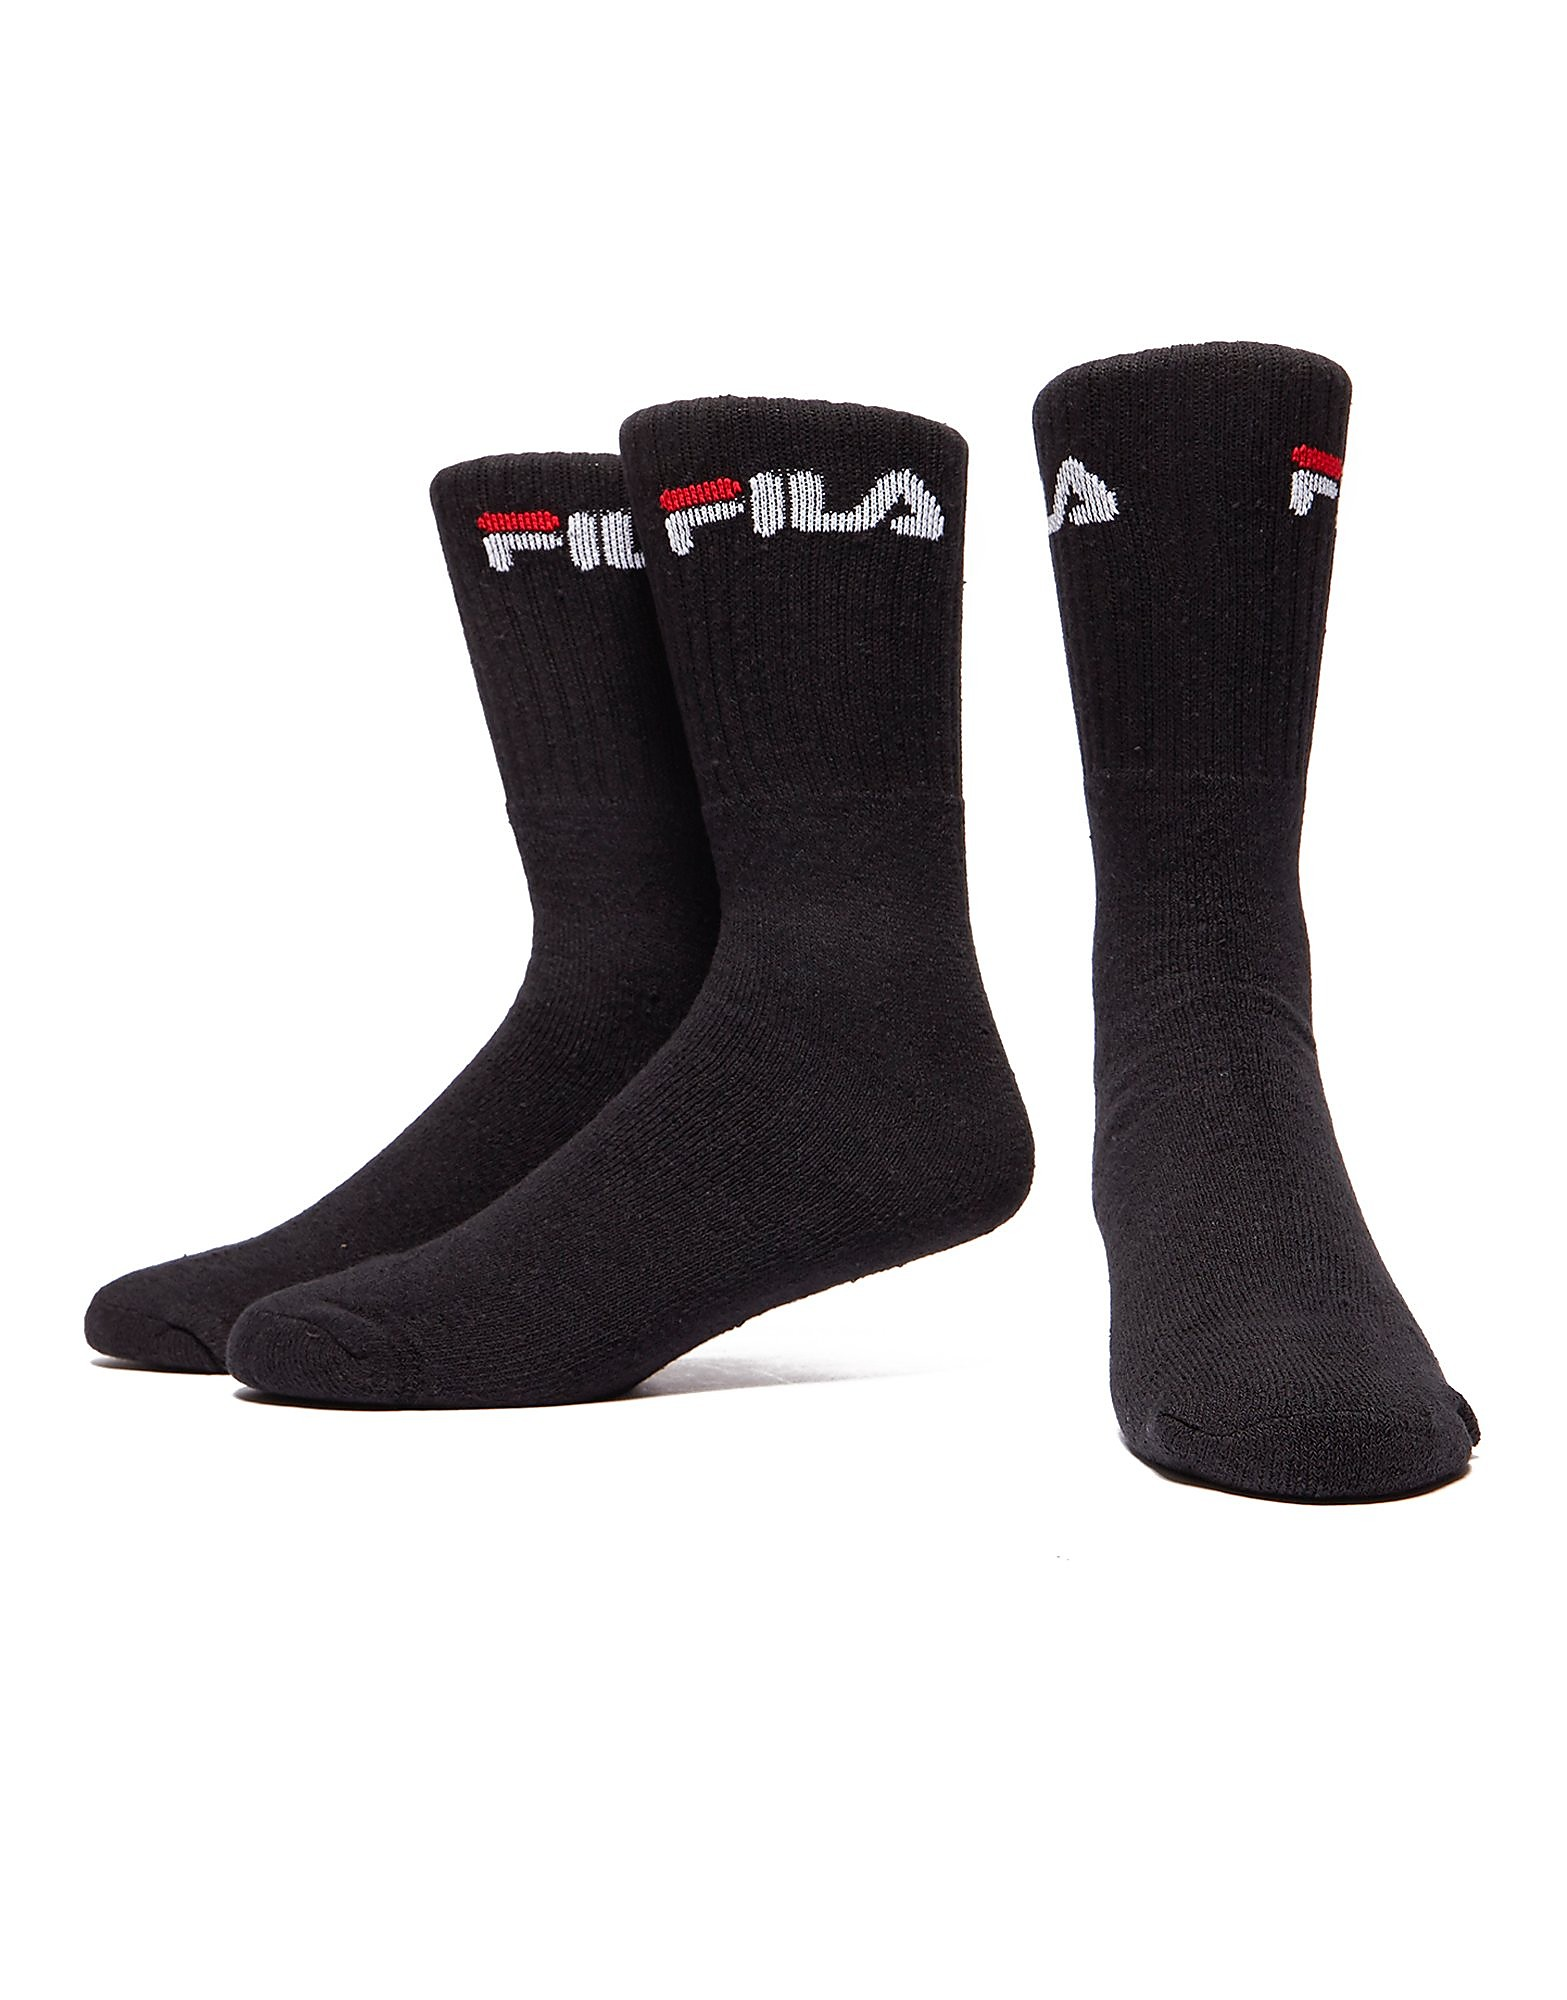 Fila Crew 3 Pack Training Socks